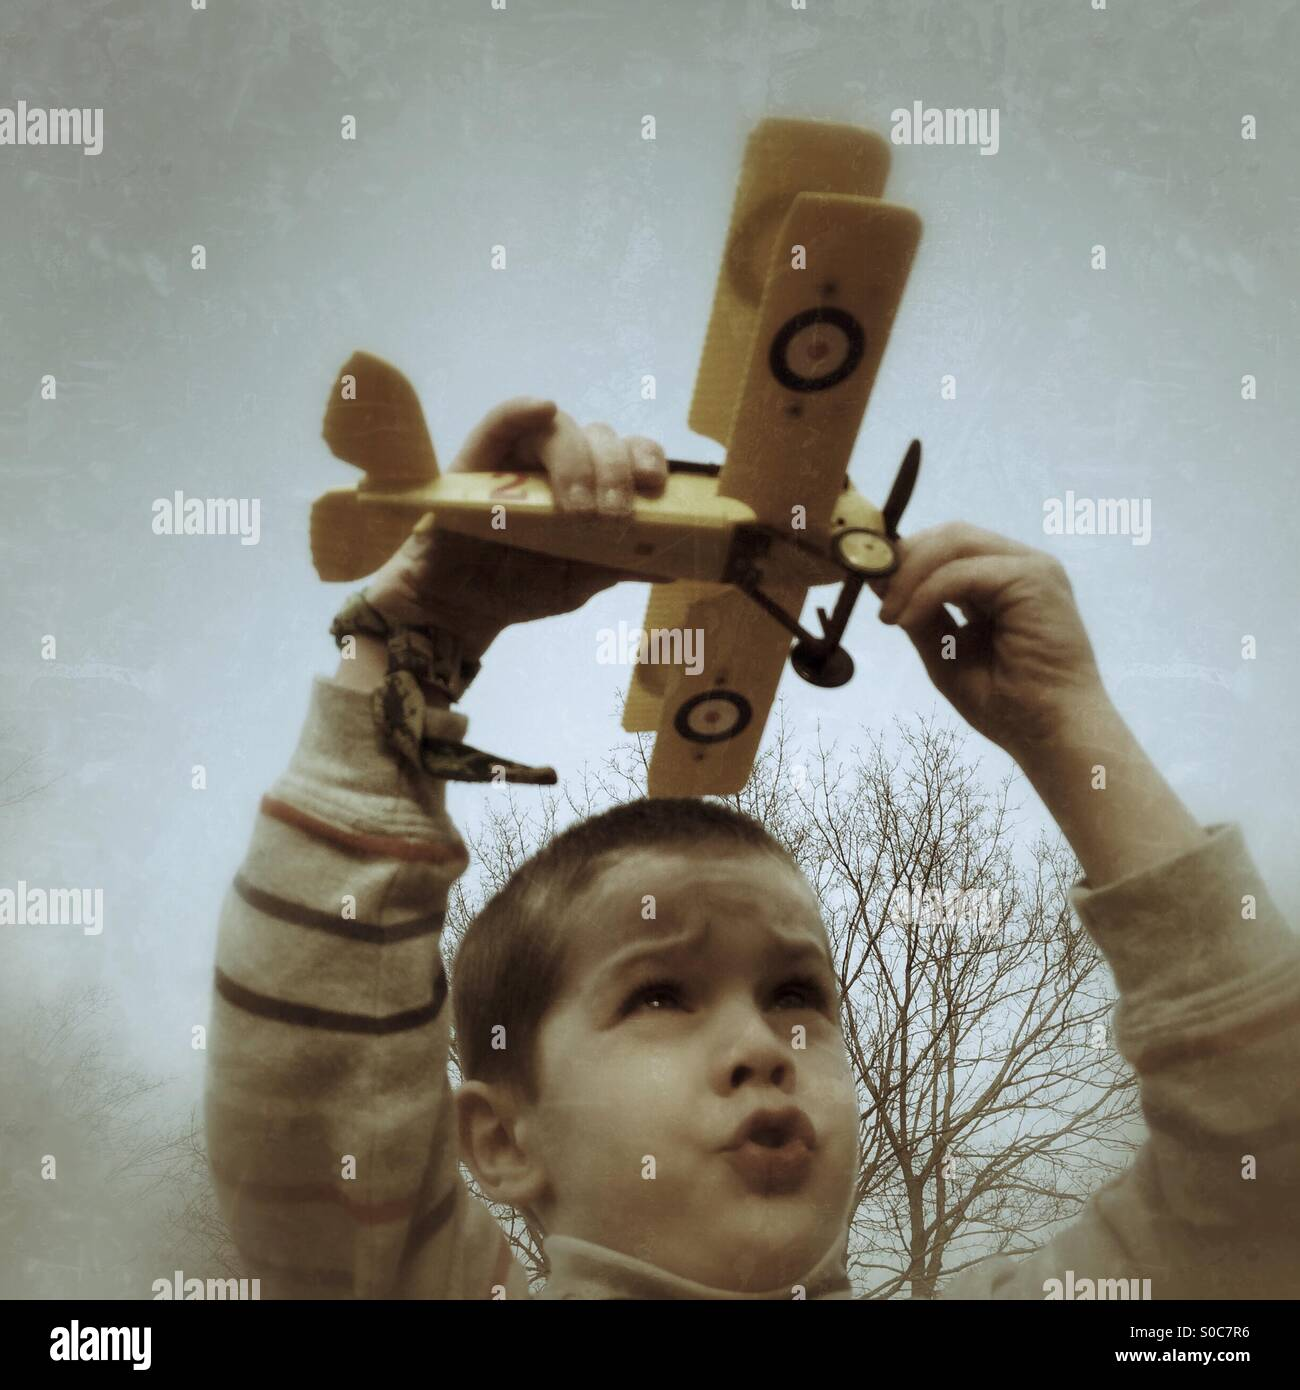 Young boy playing with model biplane - Stock Image